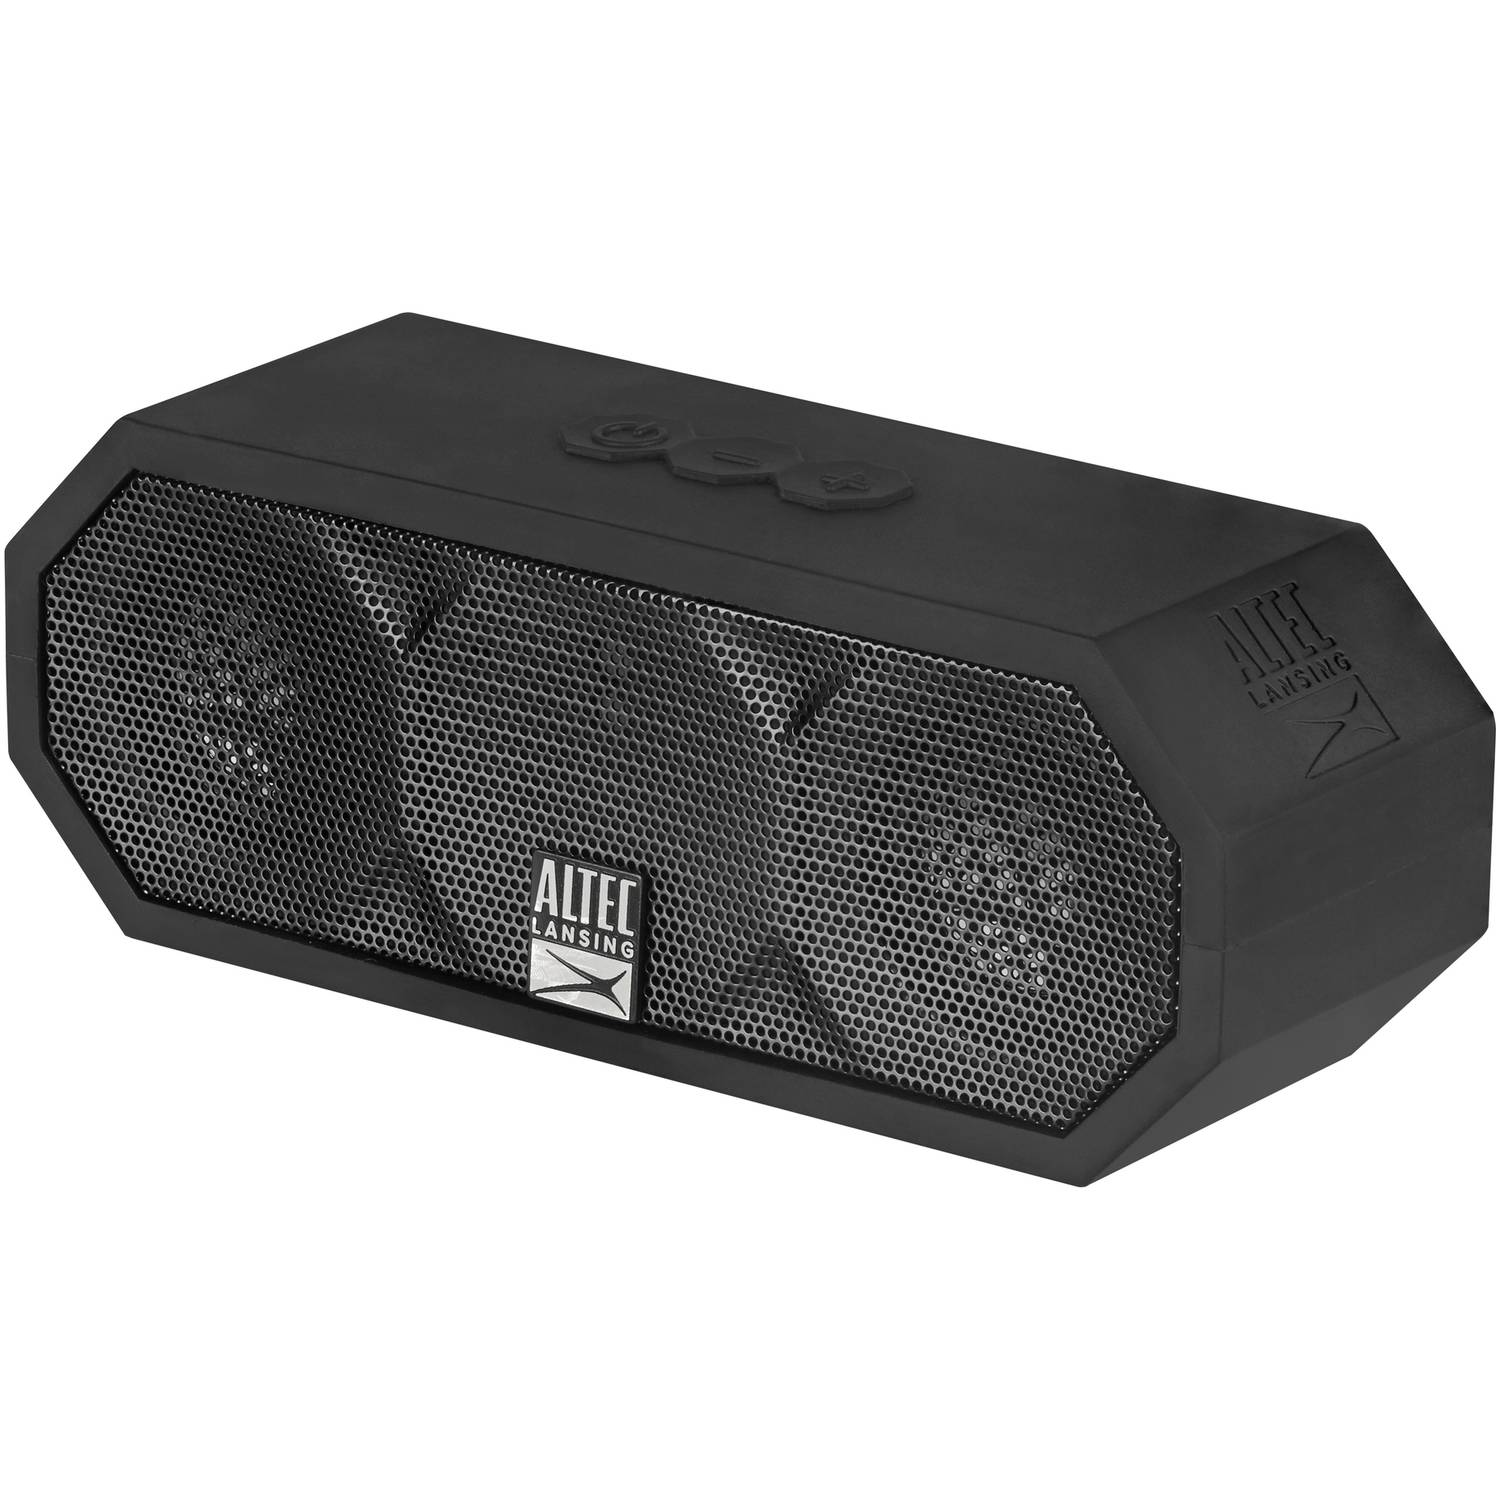 Altec Lansing iMW457 Jacket H20 Bluetooth Speaker, Black by Altec Lancing